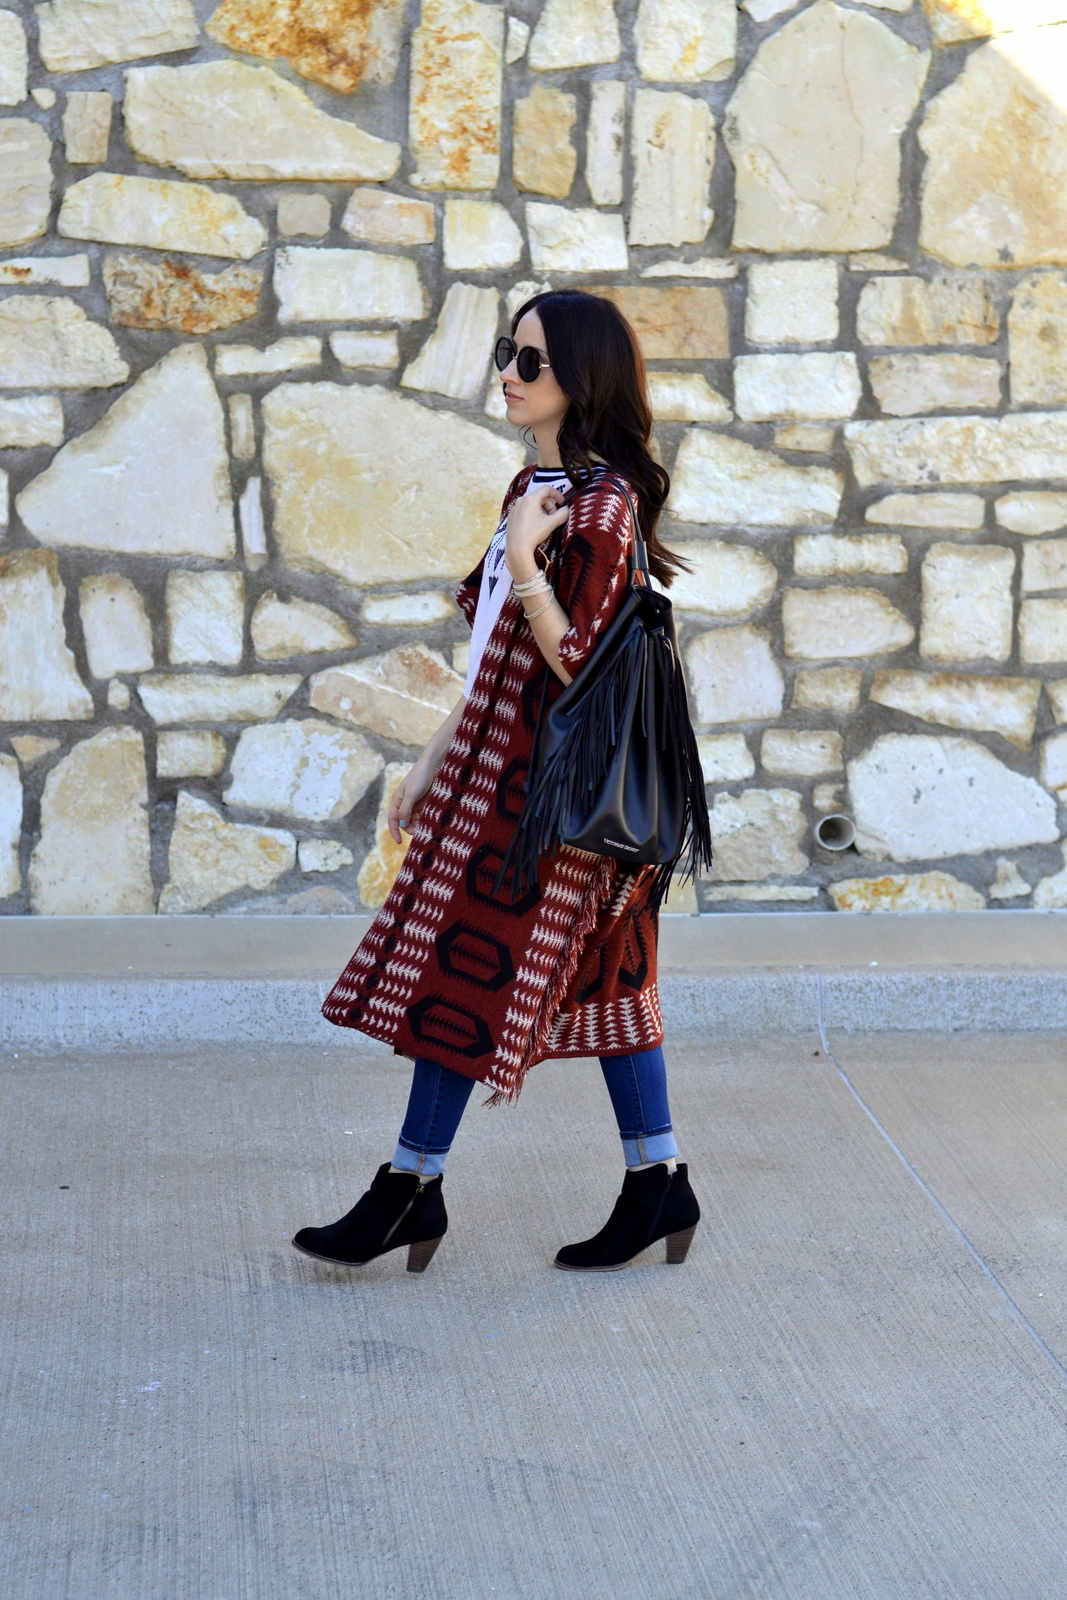 How to wear boho inspired pieces for a festival outfit